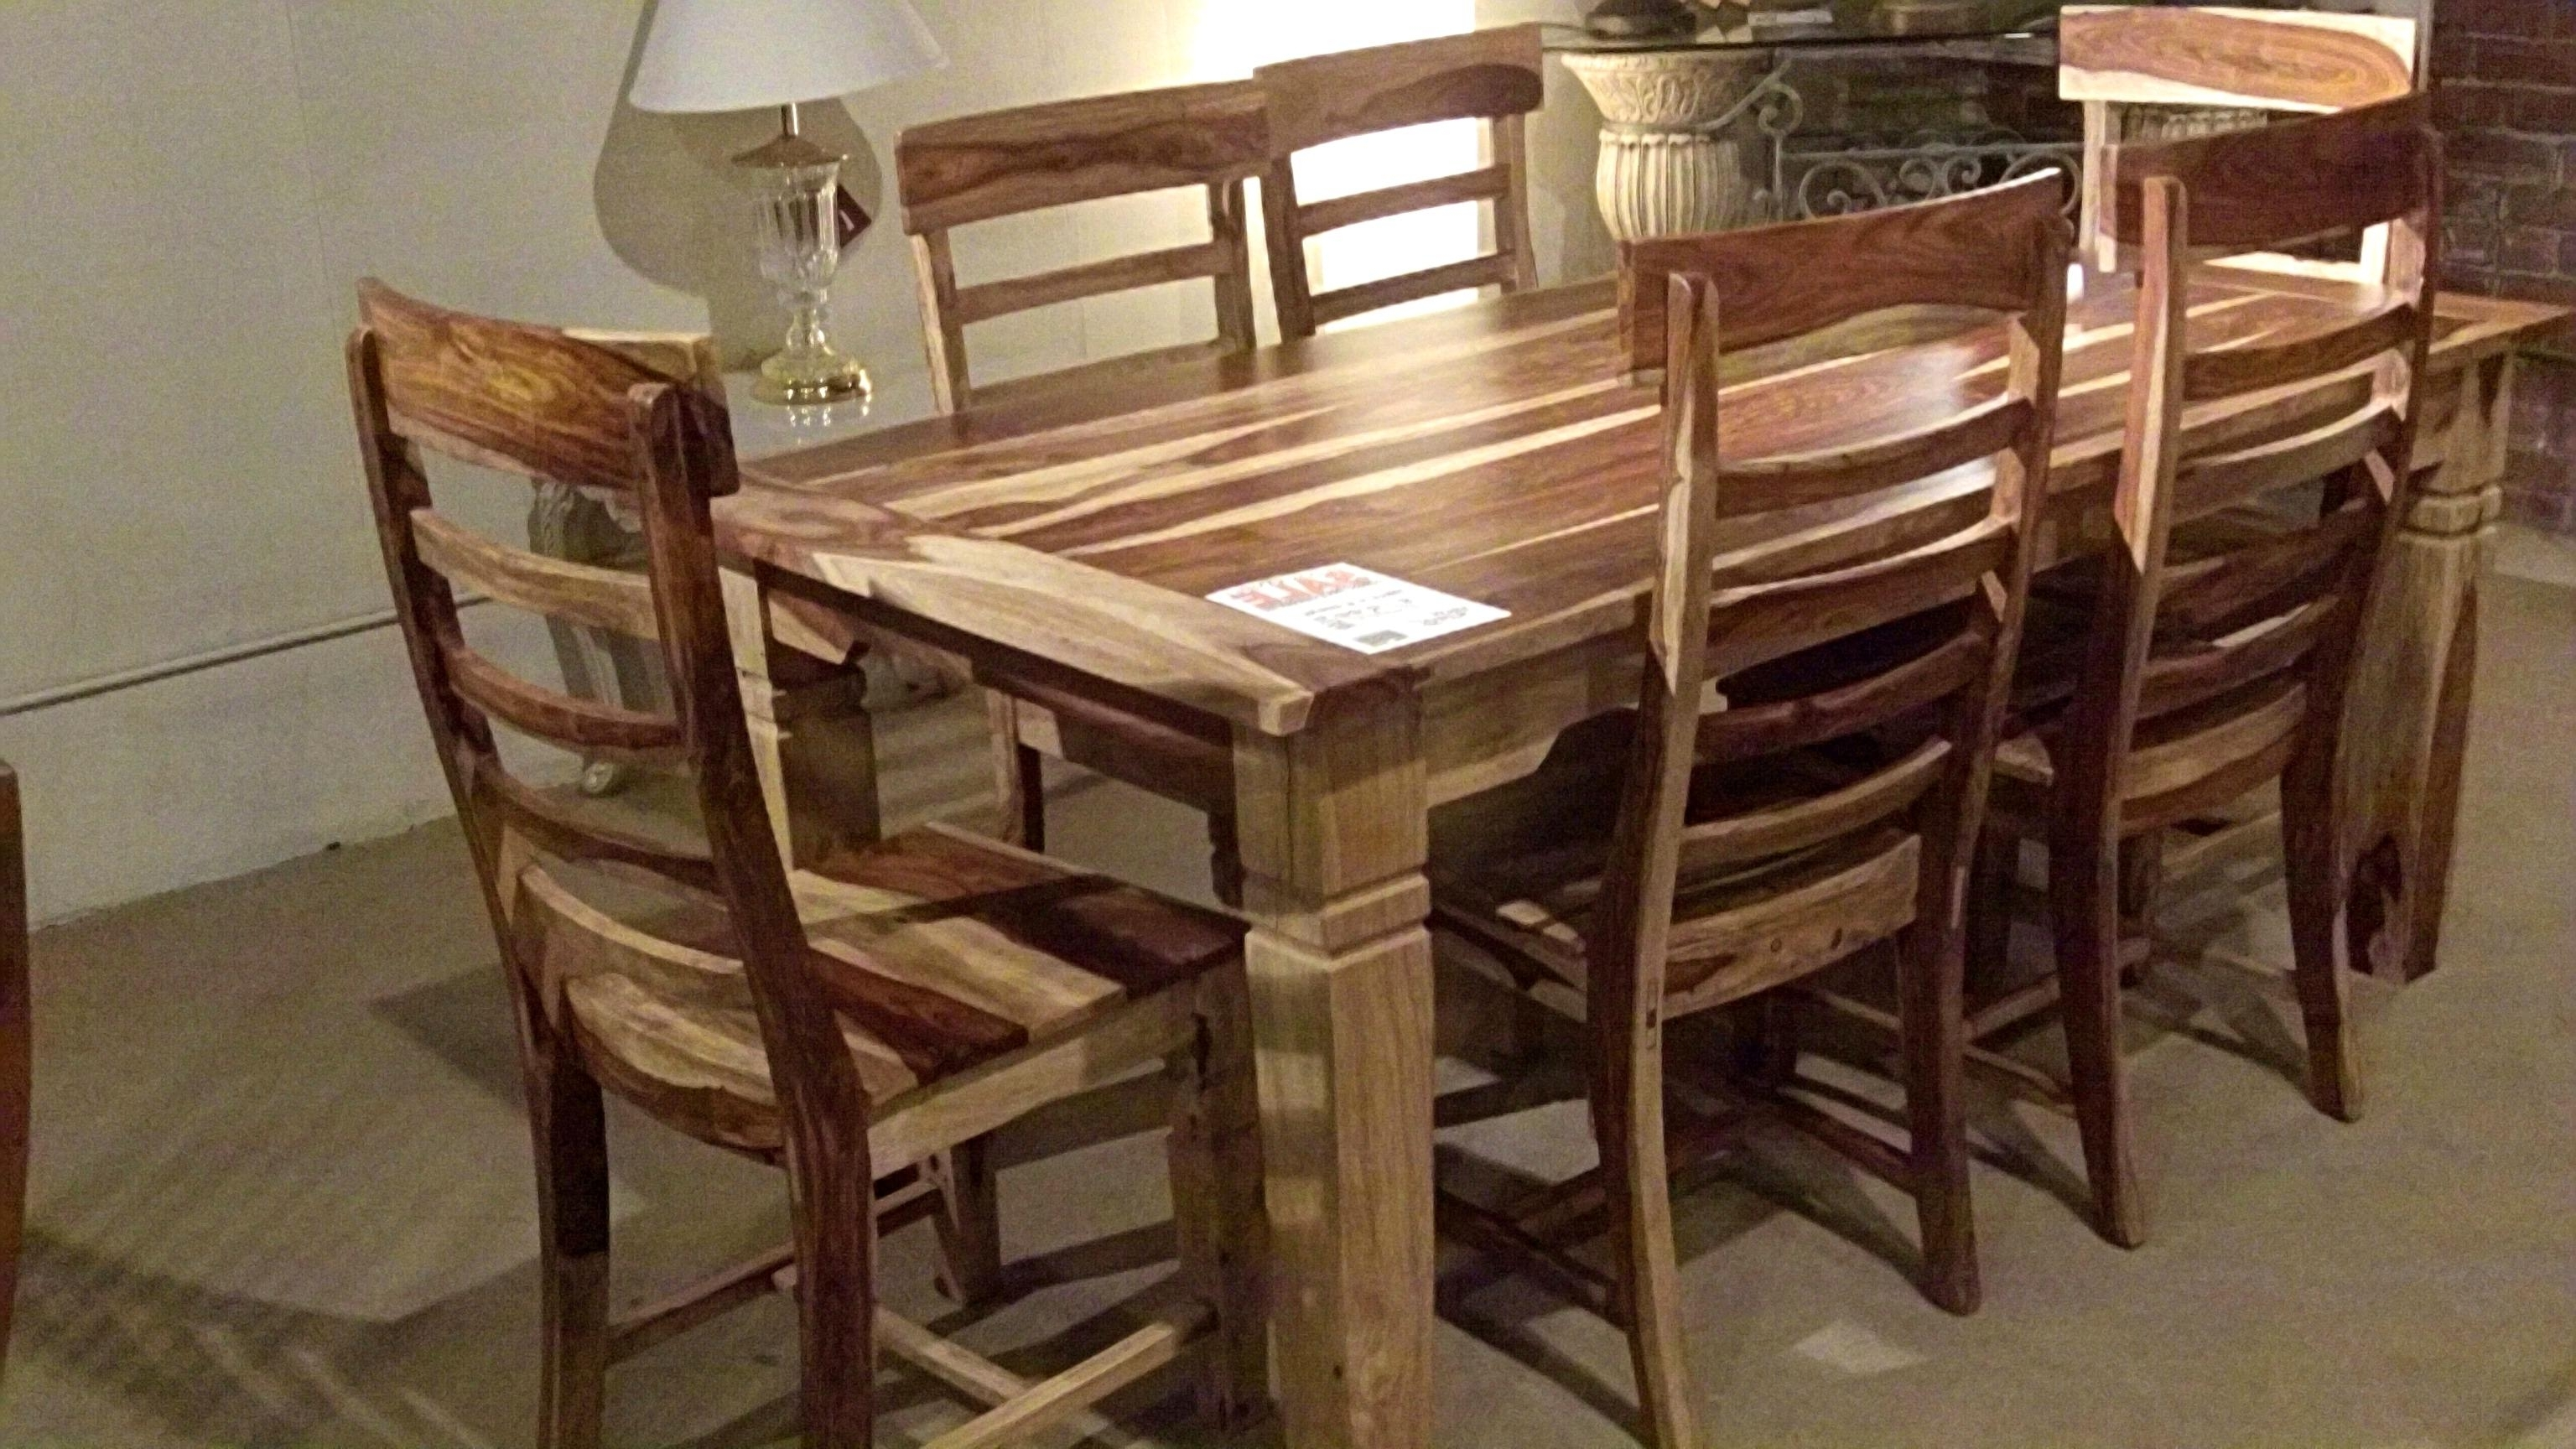 Phenomenal Sheesham Wood Dining Table Cm Pertaining To Fashionable Sheesham Wood Dining Tables (View 8 of 25)